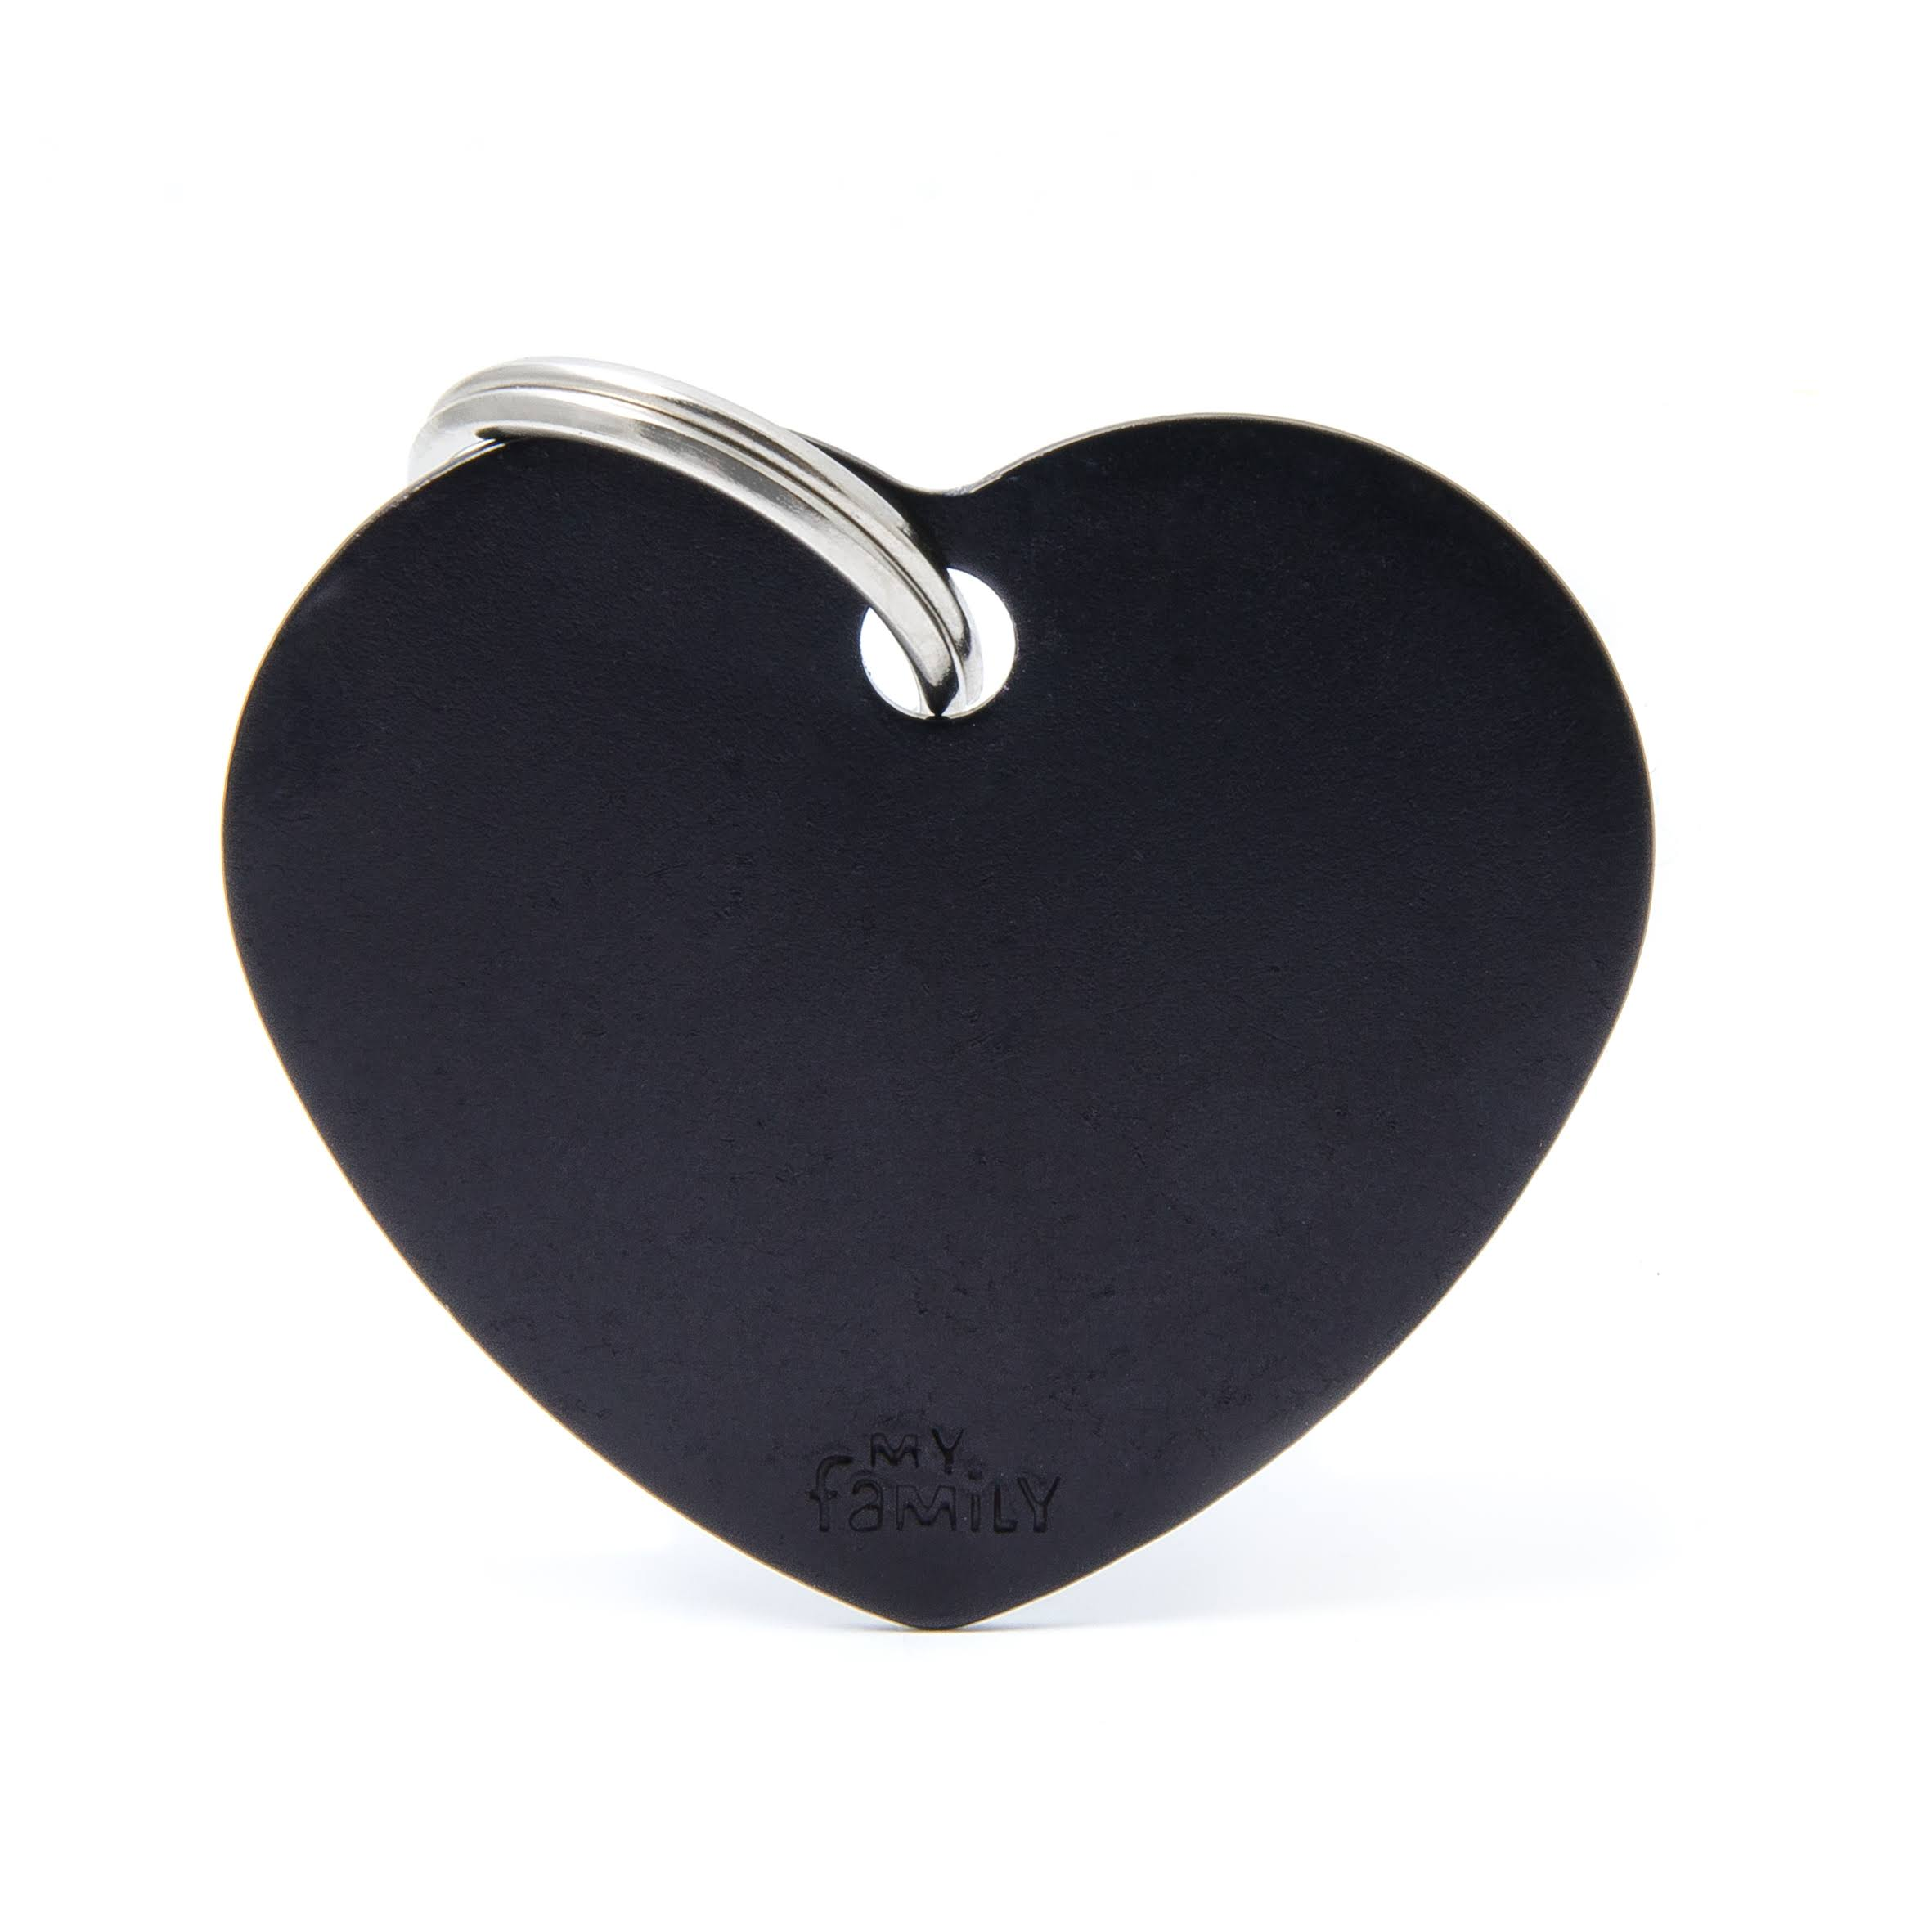 My Family Pet Id Tag - Black, Heart, Large